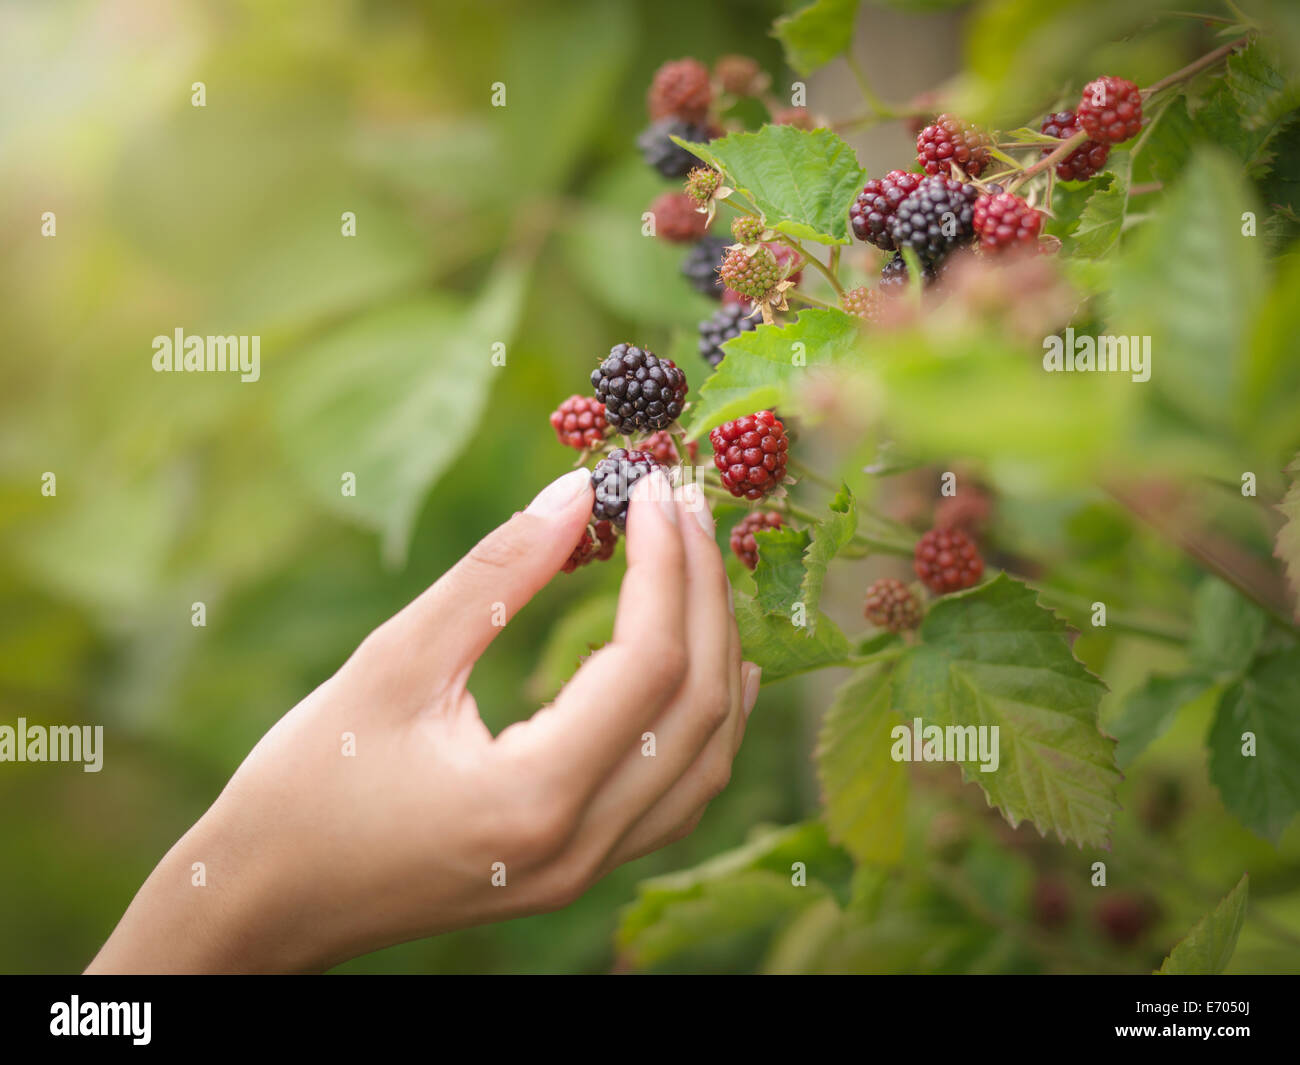 Working picking blackberries on fruit farm, close up - Stock Image